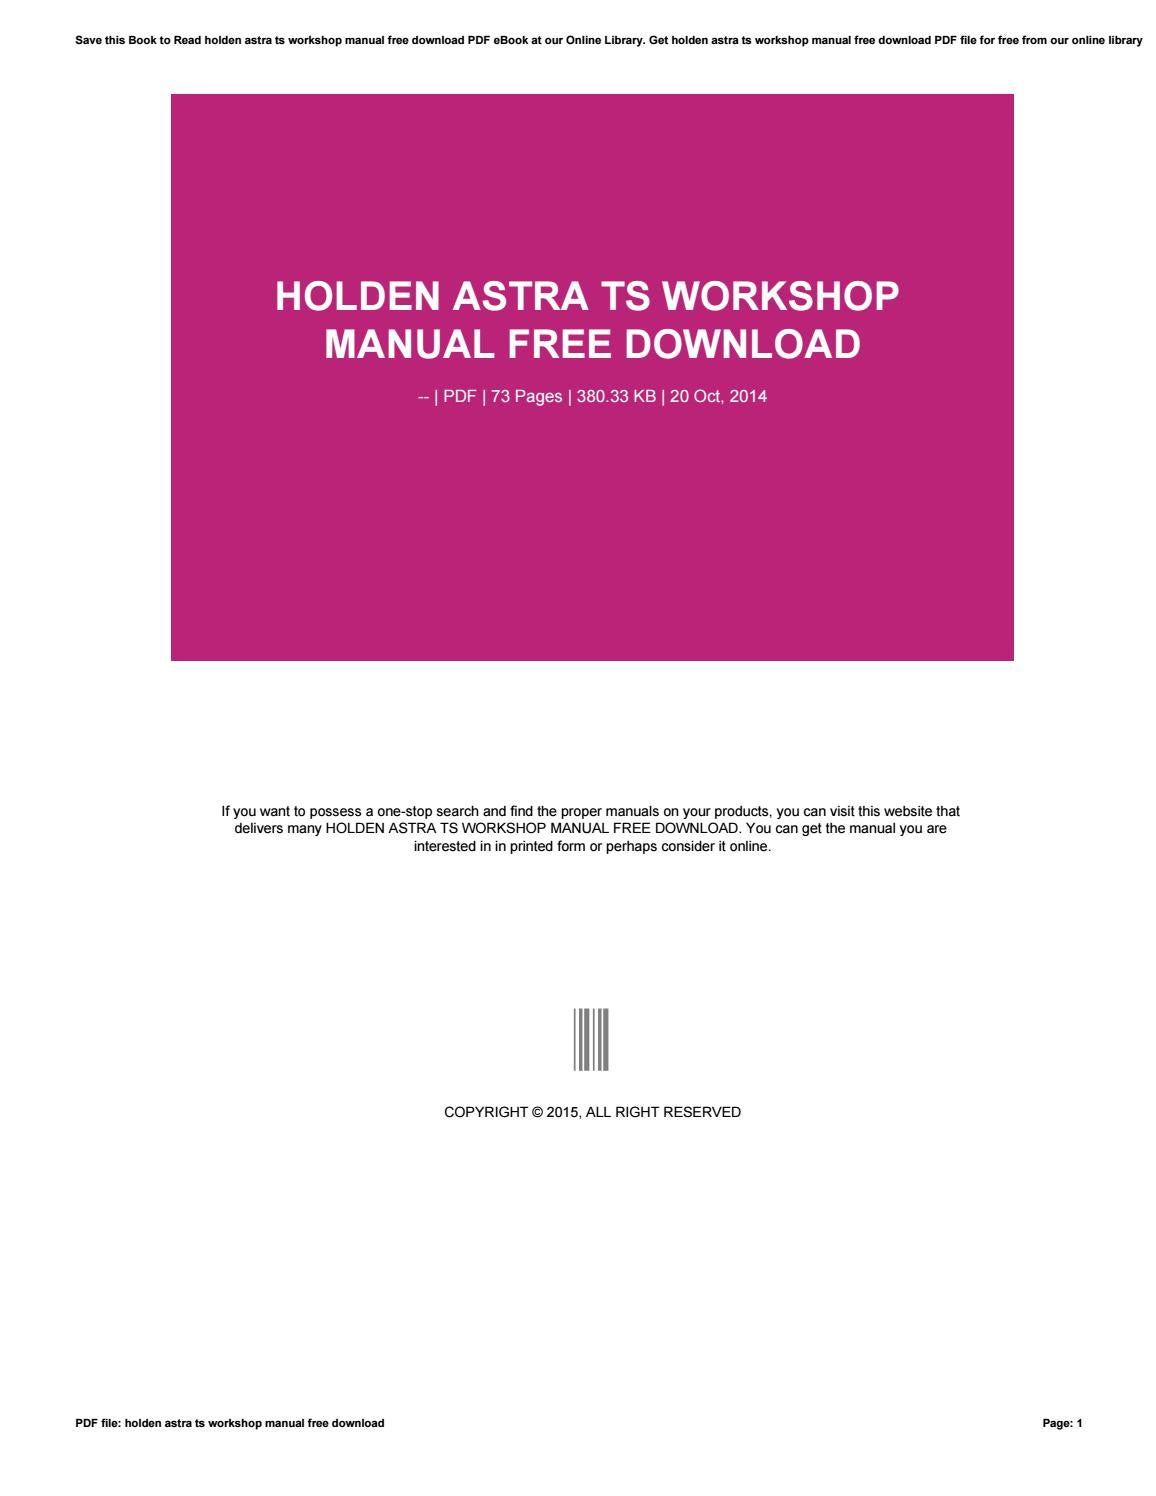 holden astra ts workshop manual free owners manual u2022 rh wordworksbysea com Vauxhall Astra Trunk Space Vauxhall Vectra